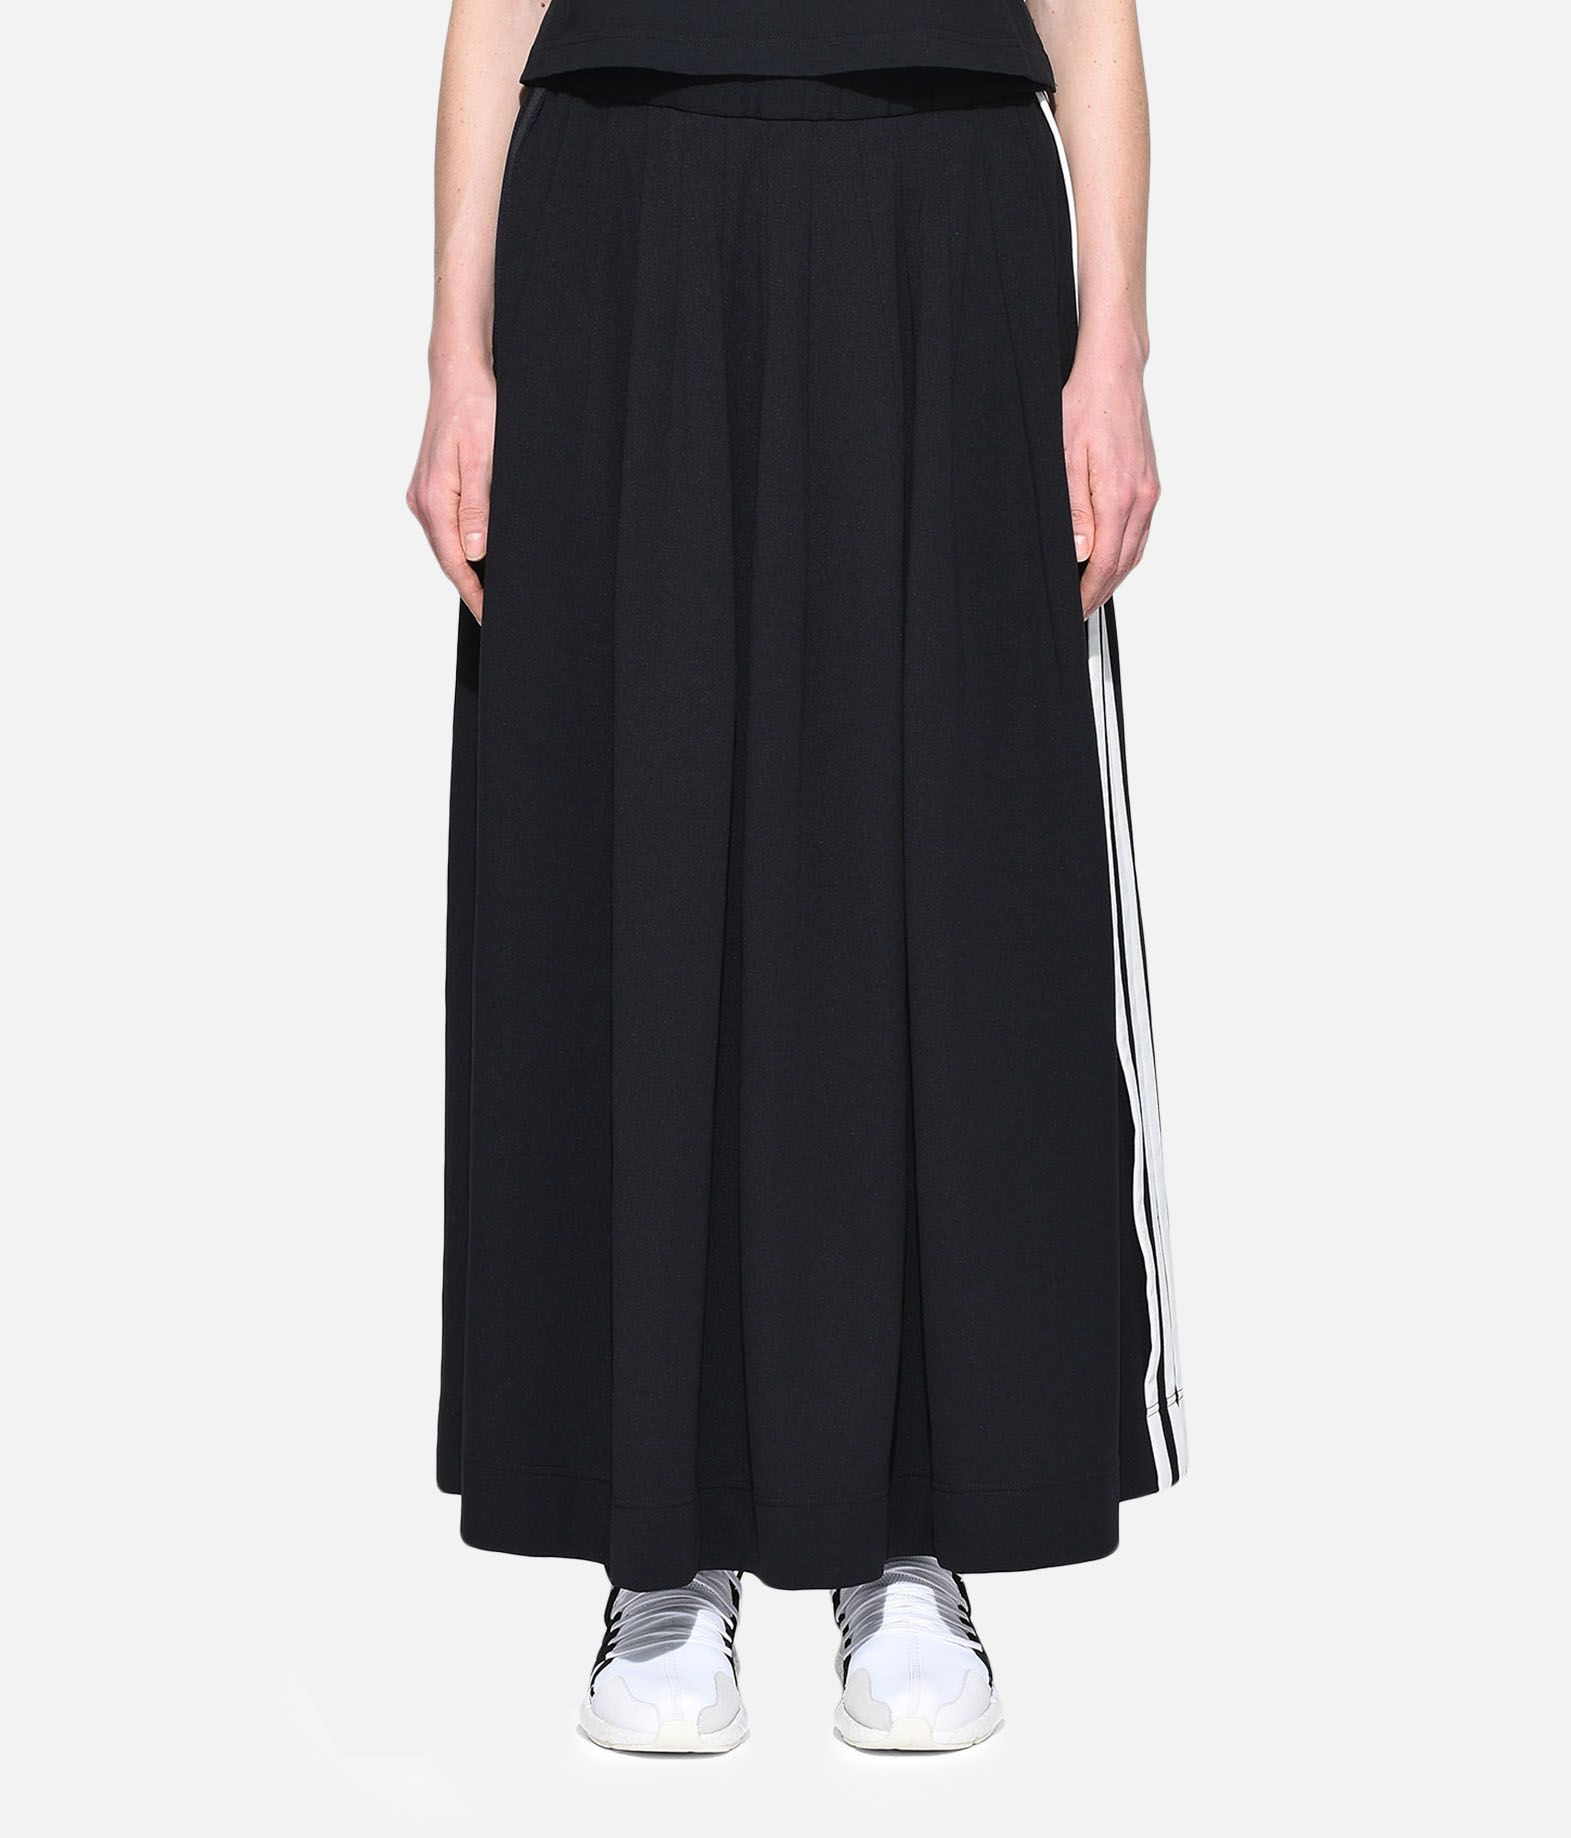 Y-3 Y-3 3-Stripes Selvedge Matte Track Skirt Knee length skirt Woman r